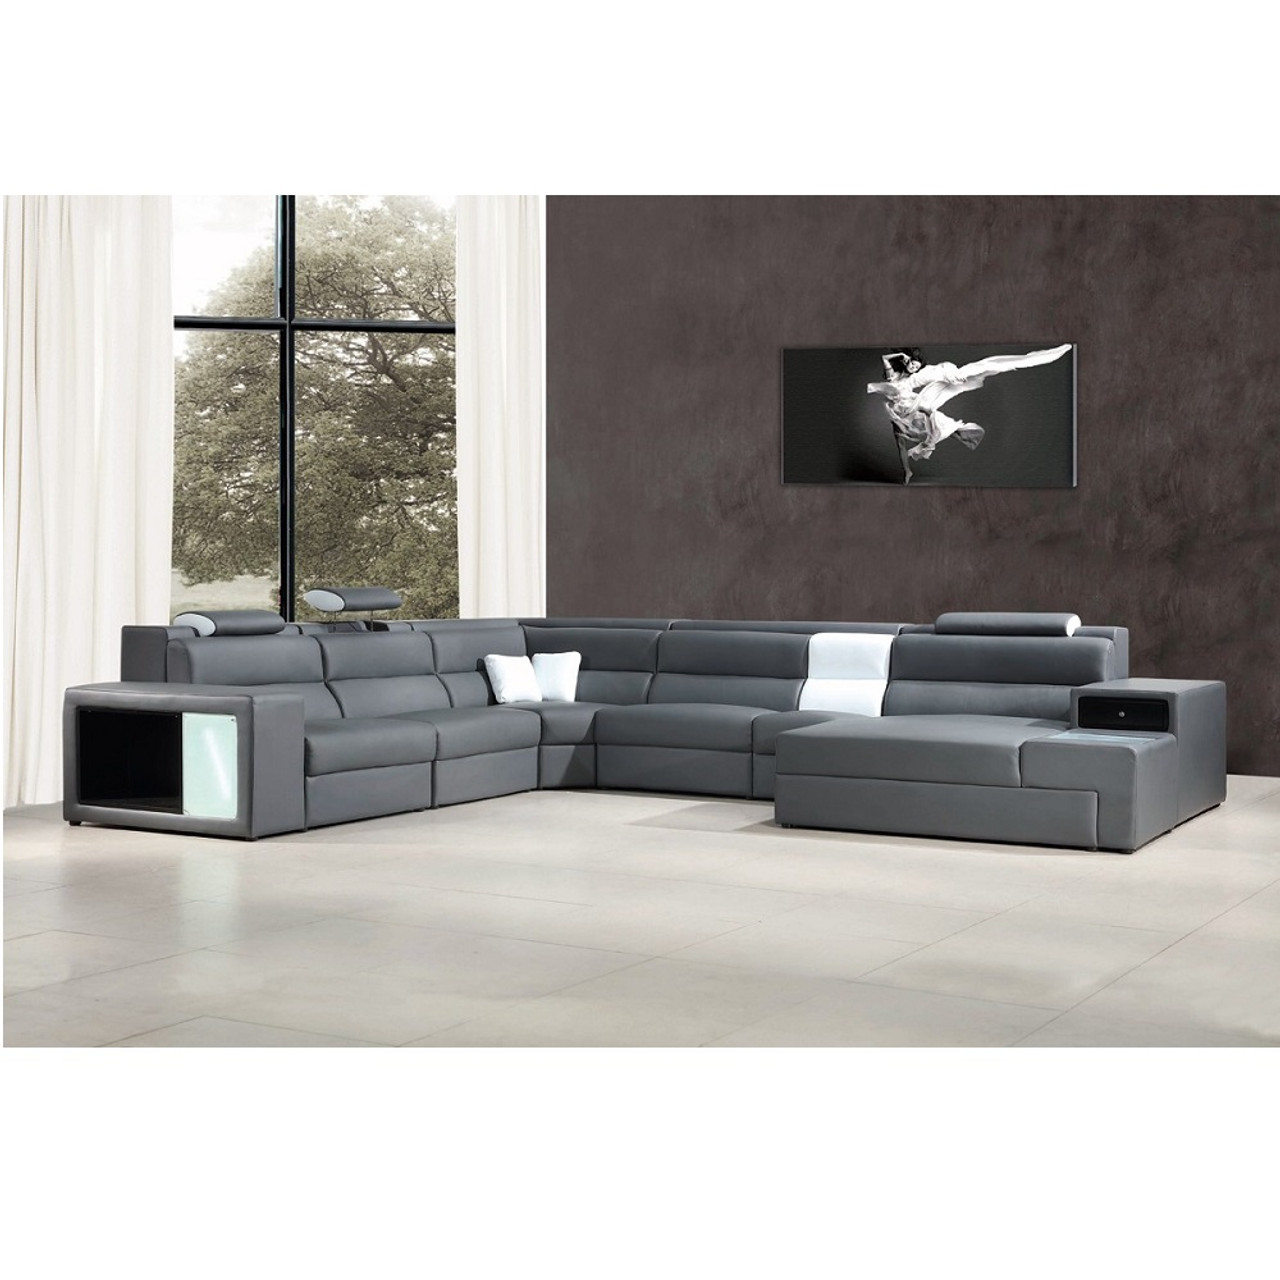 Divani Casa Polaris Grey Contemporary Bonded Leather Sectional Sofa With Lights